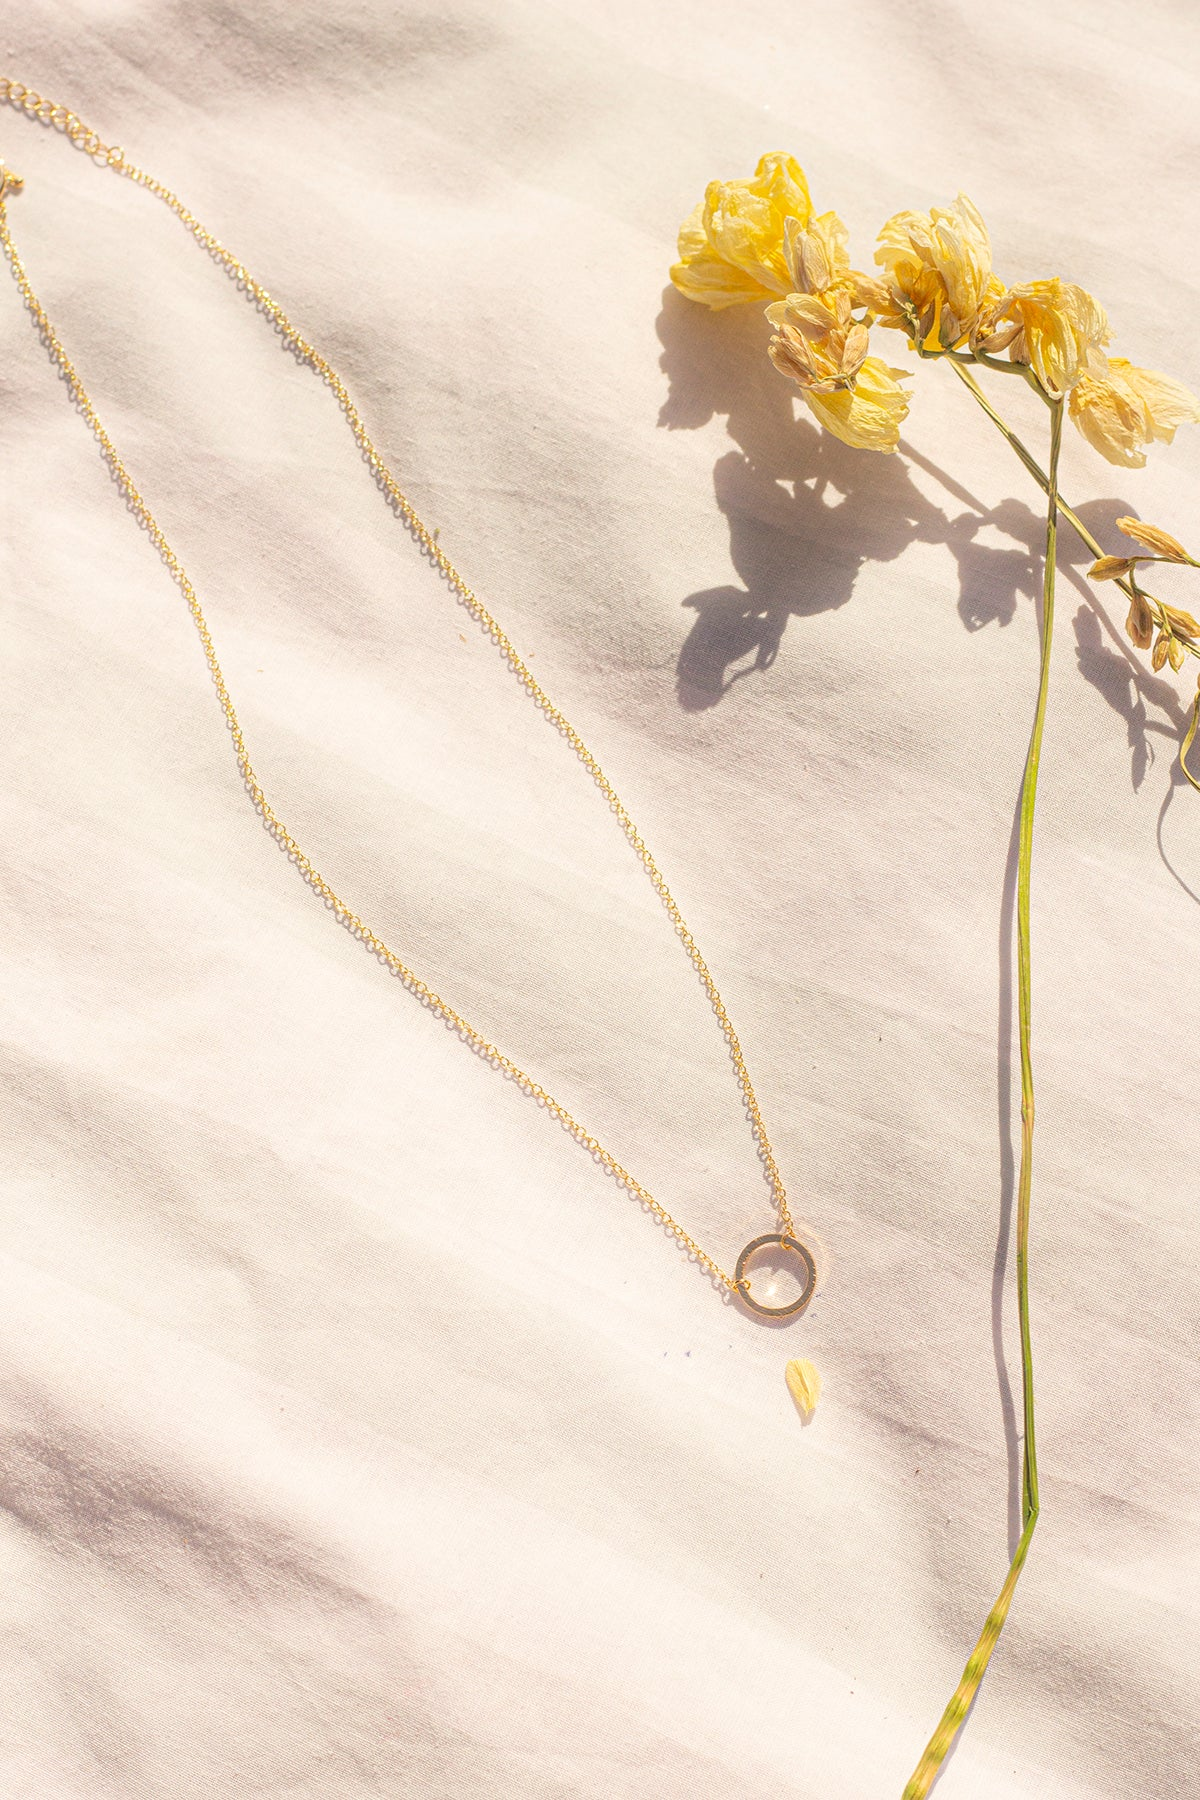 Circle Motif Necklace - Sugar + Style